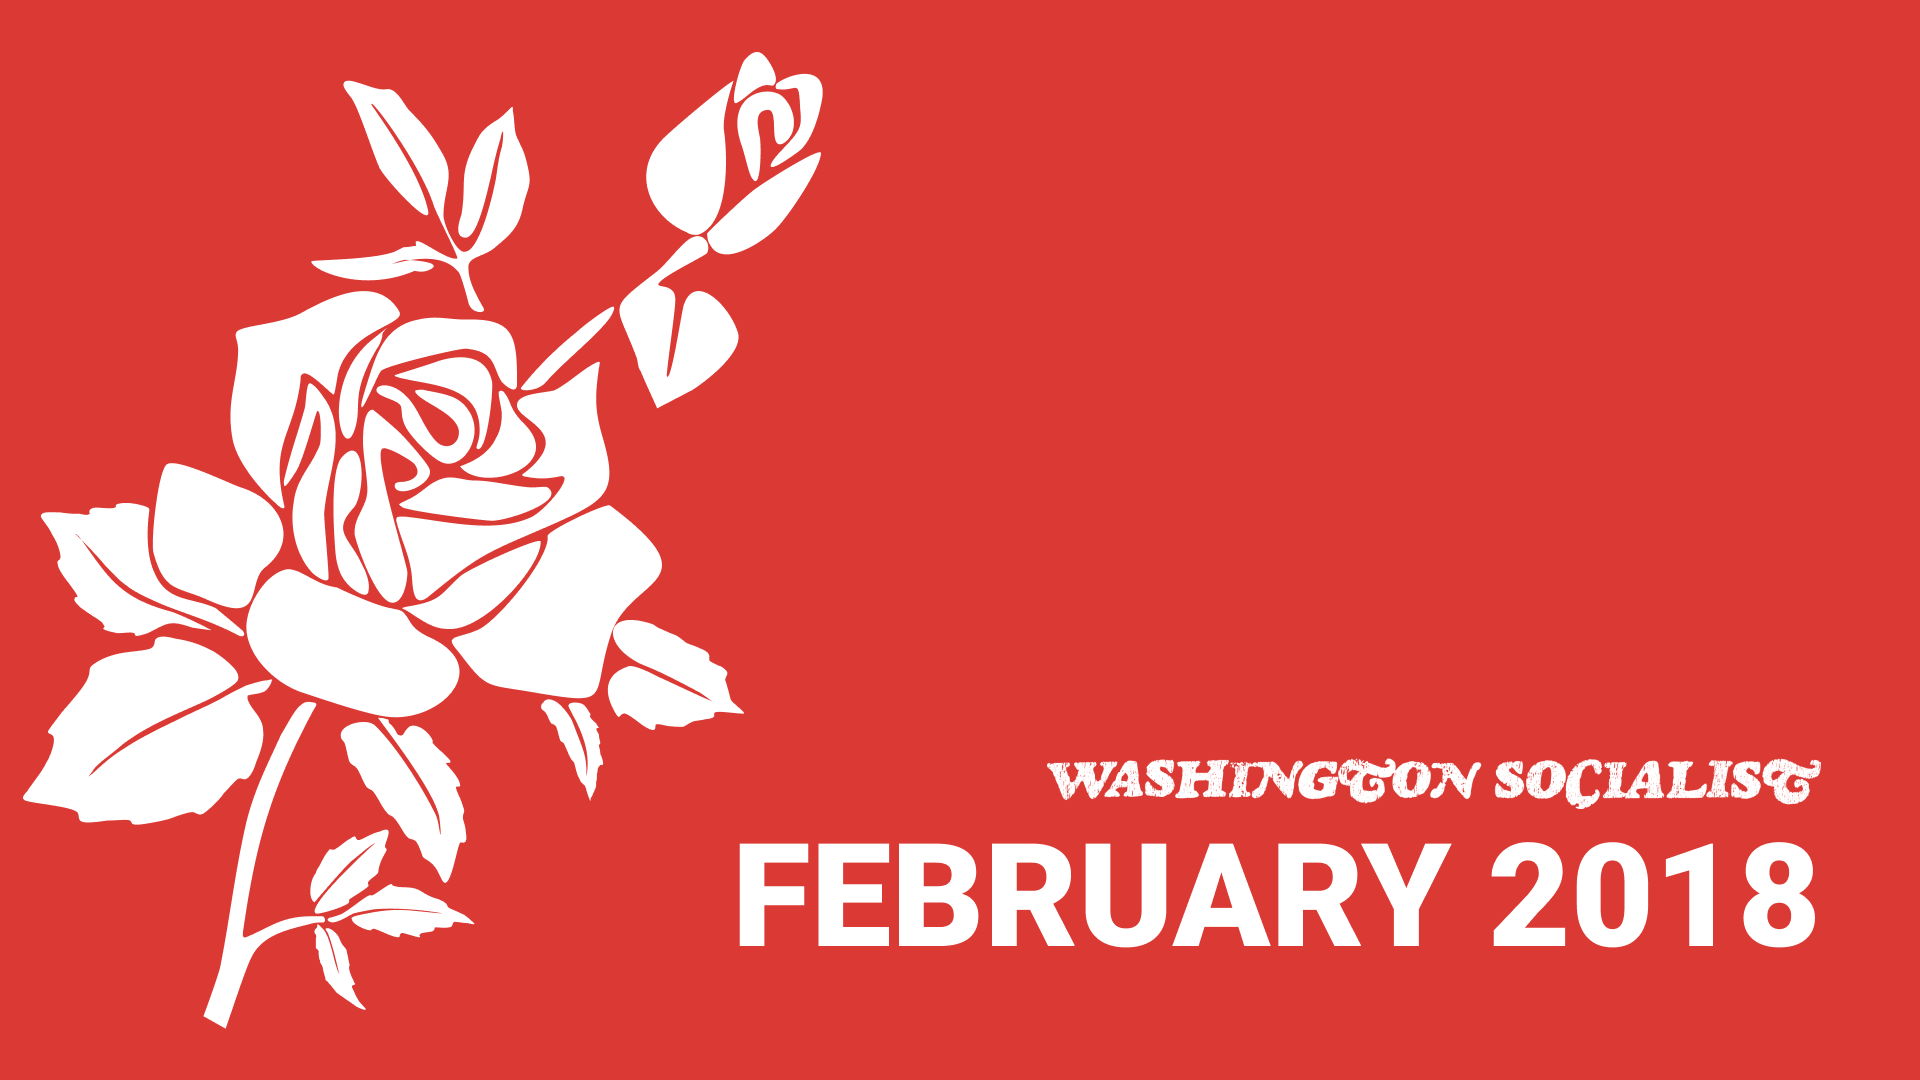 Washington Socialist Cover, February 2018